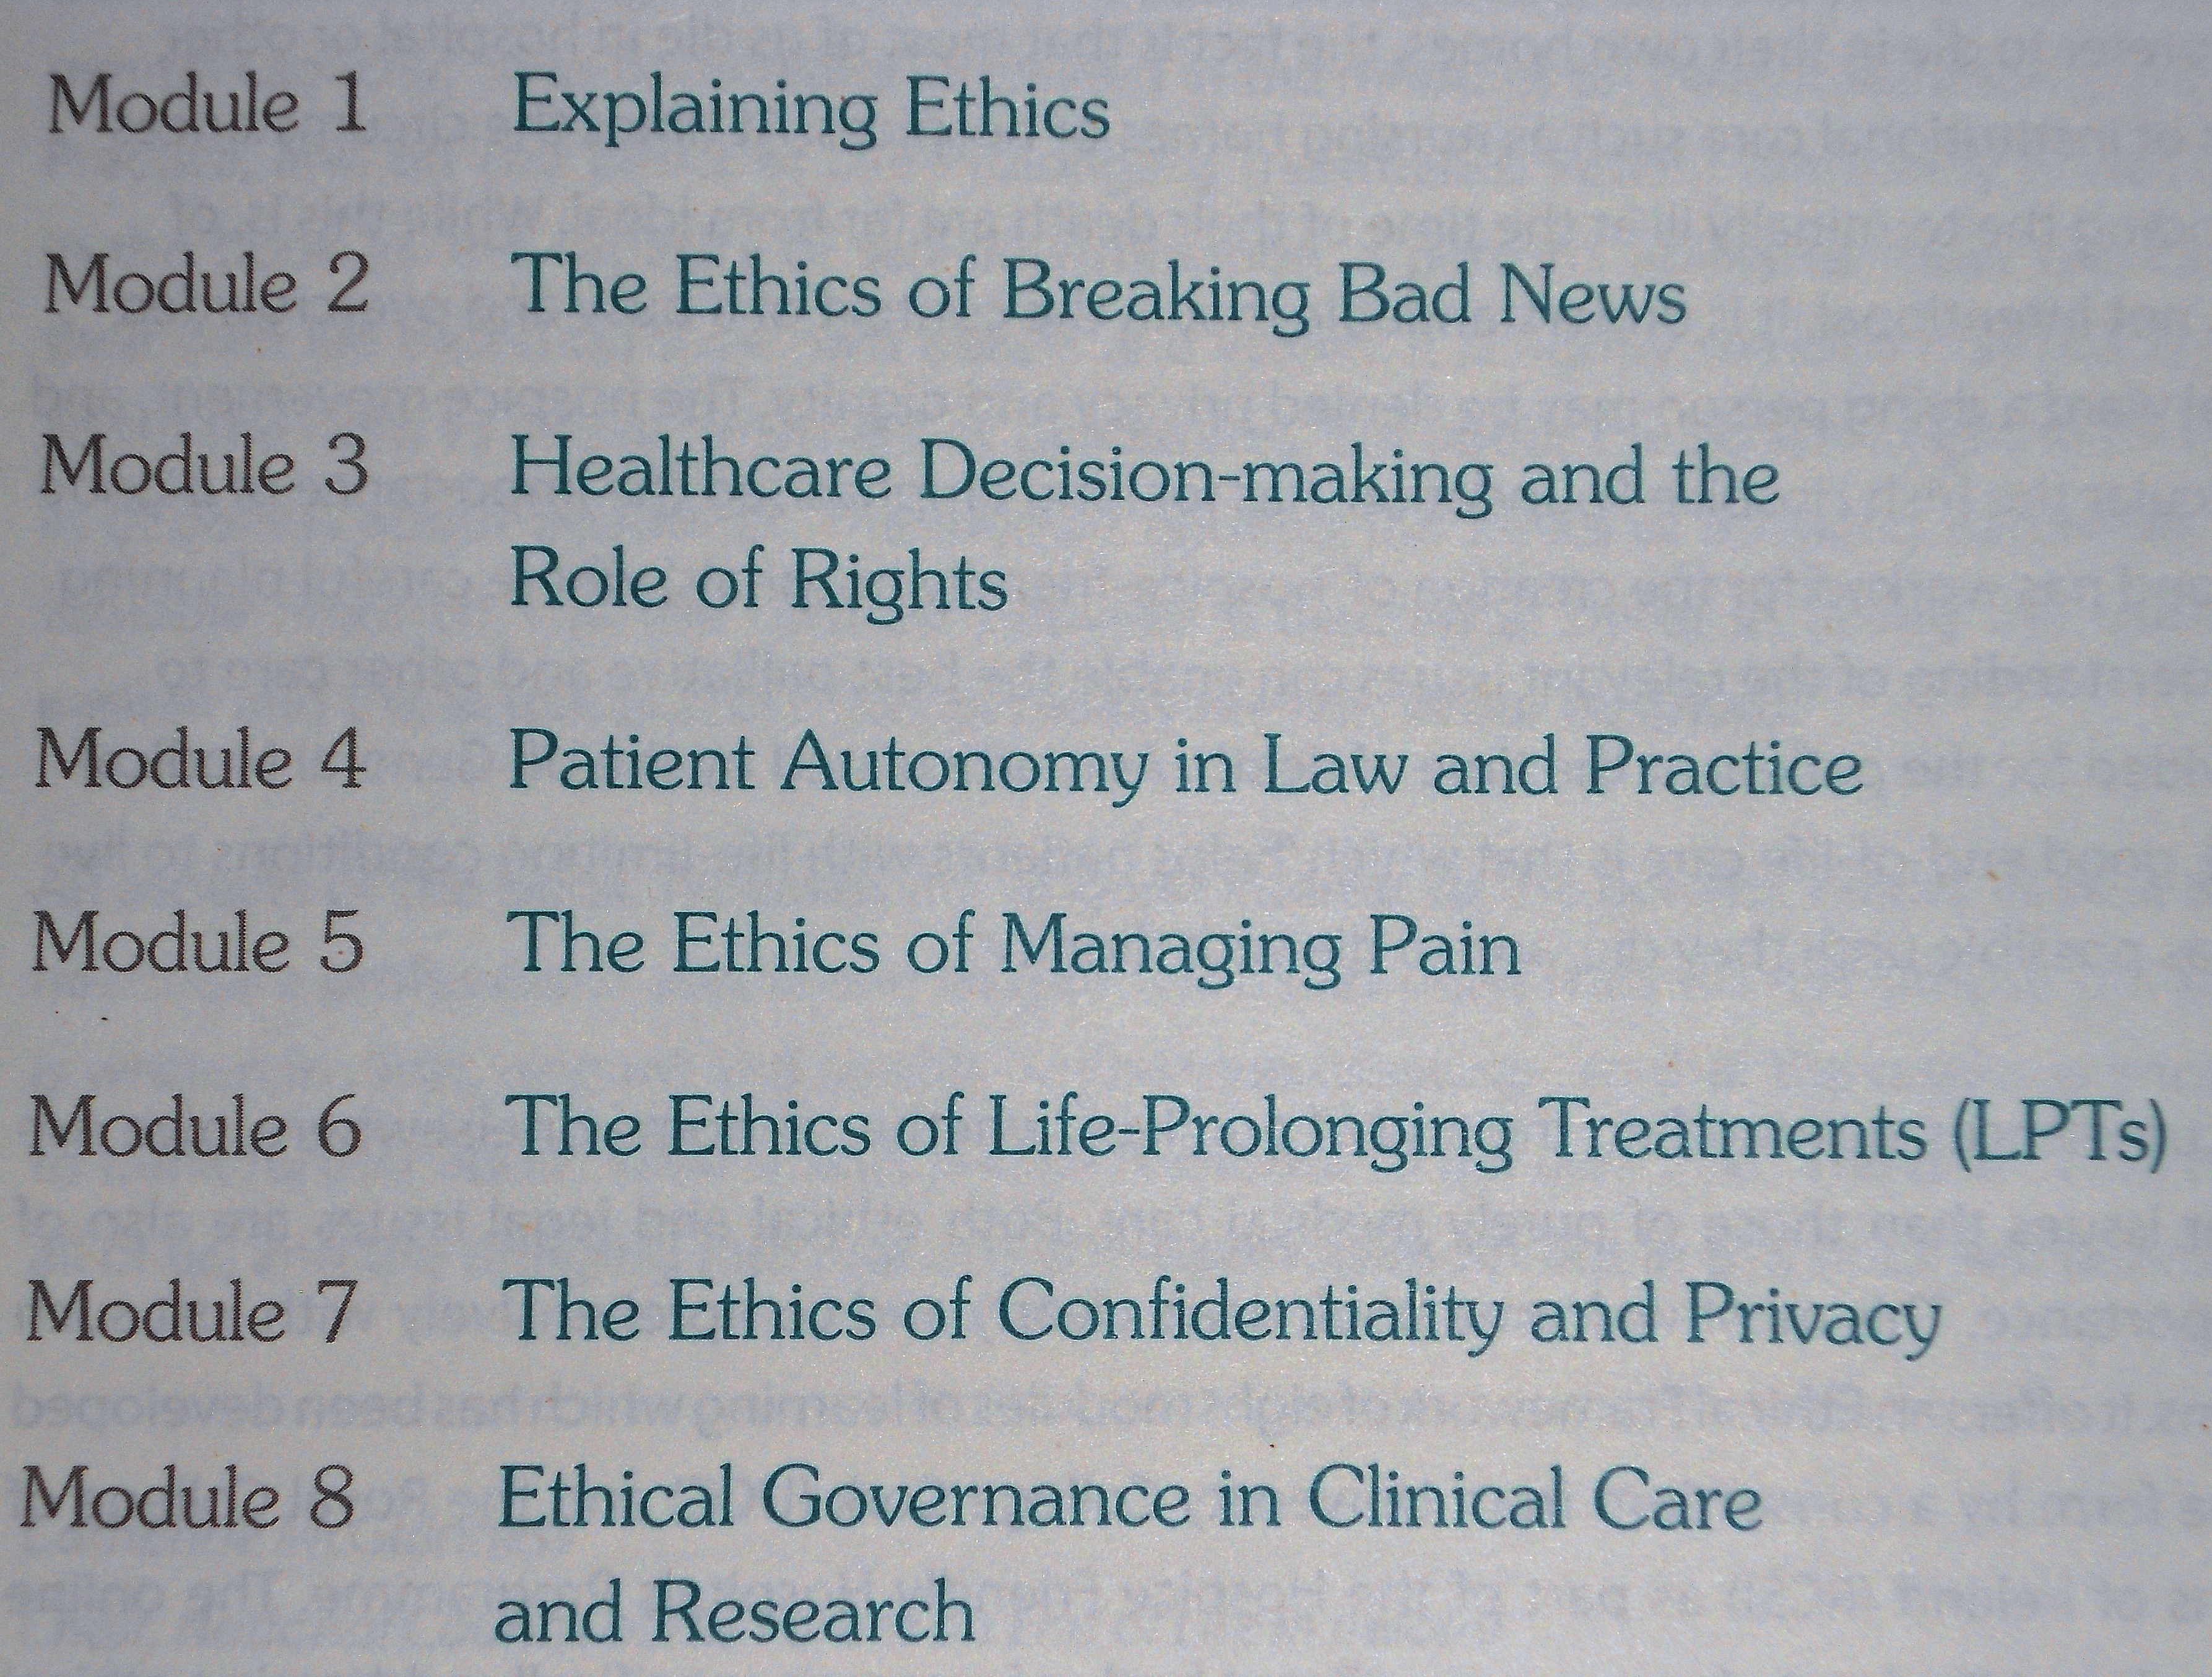 ethical and legal issues of death and dying essay Death, dying and other ethical dilemmas anand chatoorgoon university of phoenix death, dying and other ethical dilemmas are issues that all intensive care units (icus) throughout the world have to face and address.